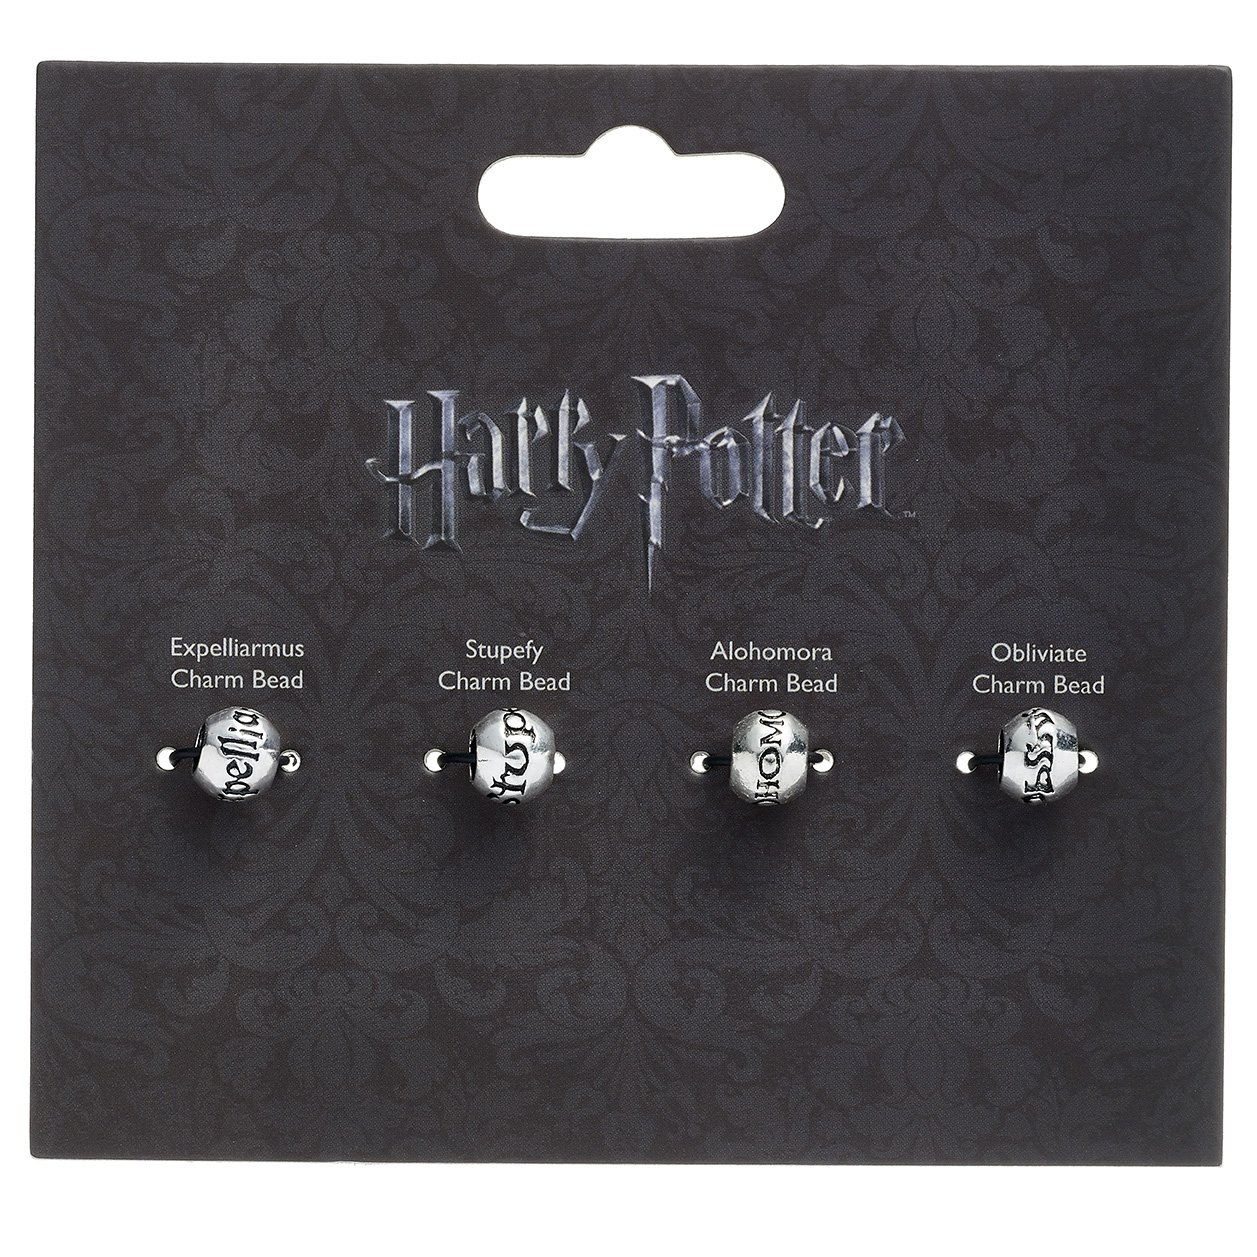 Officiellement sous licence Harry Potter Silver Plated Spell Silder charme perle Set HP0070